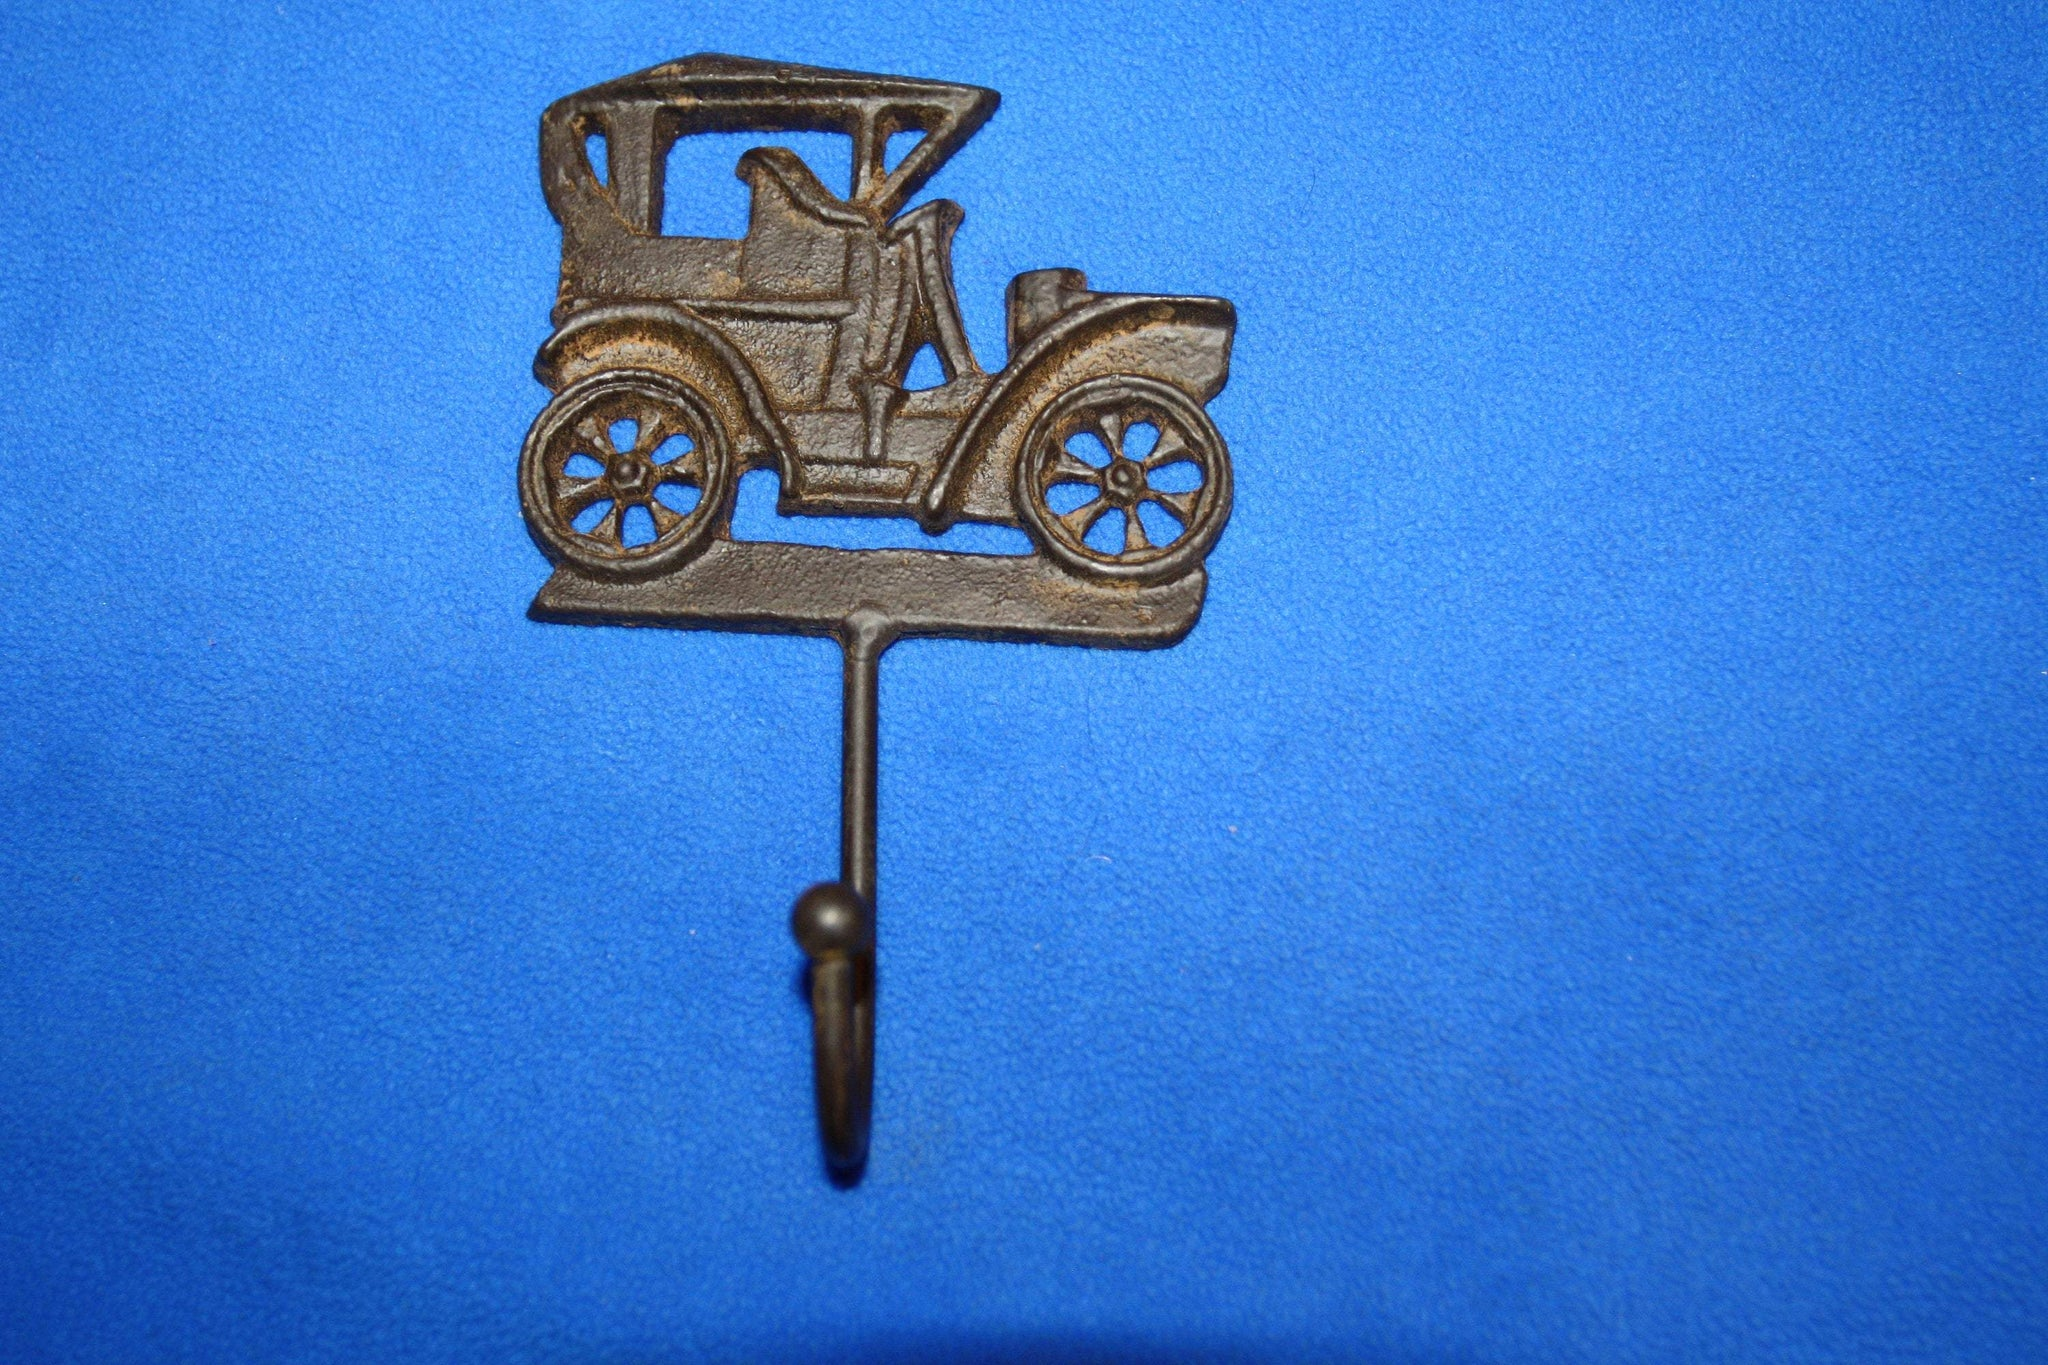 Vintage Car Design Wall Decor Cast Iron Wall Hooks 6 inch Coat Hat Towel Hooks Rustic Brown, Volume Priced, H-25